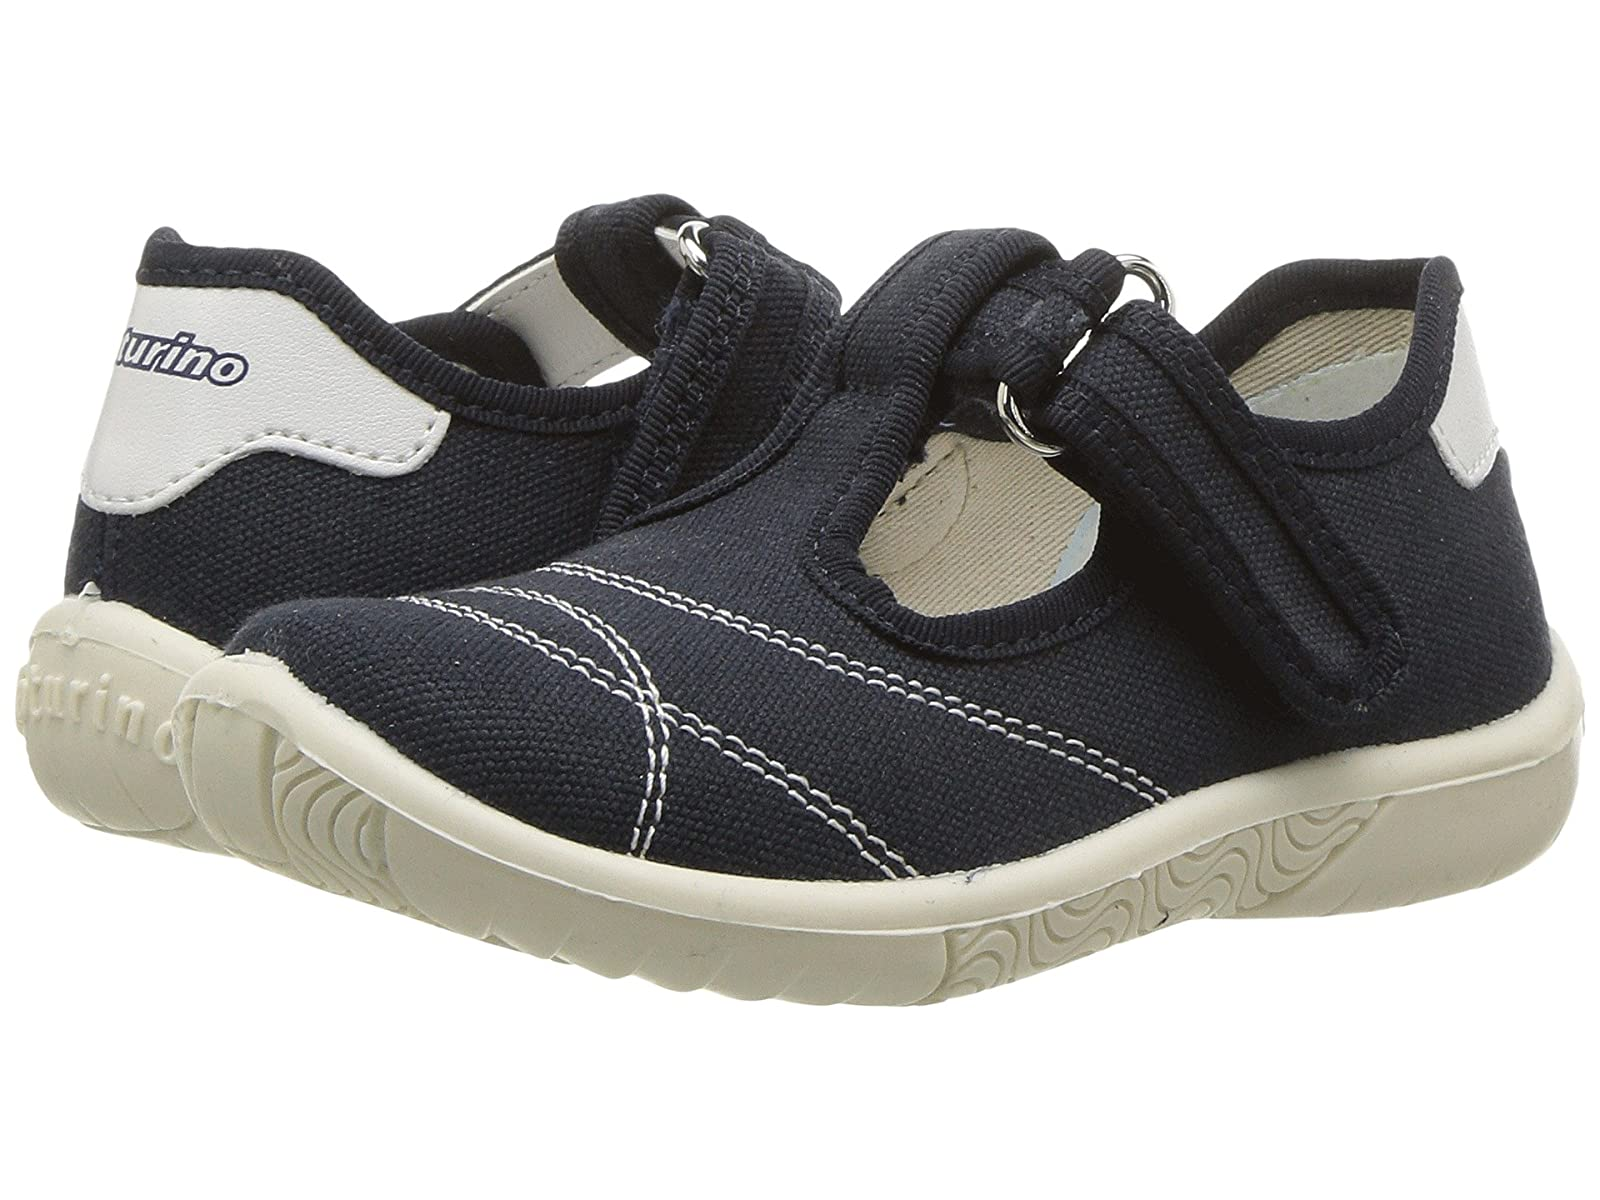 Naturino 7742 USA SS18 (Toddler/Little Kid)Cheap and distinctive eye-catching shoes